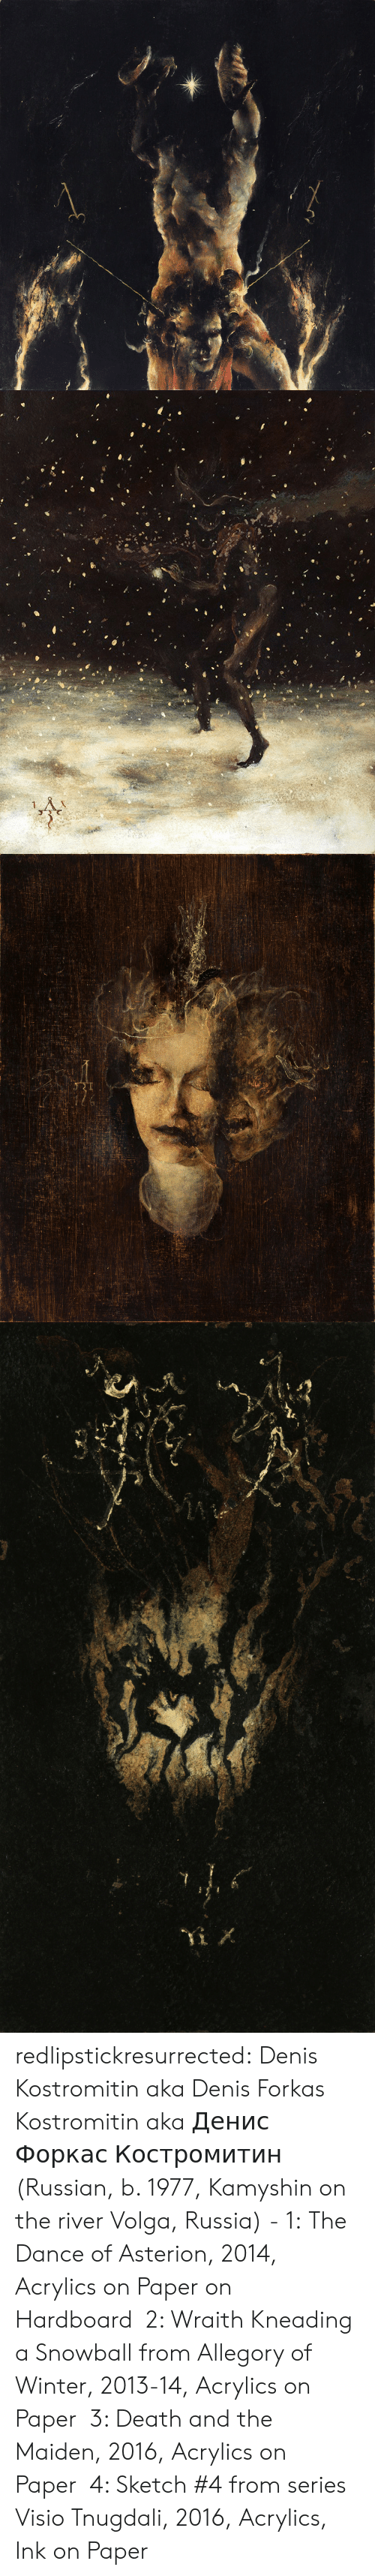 ink: redlipstickresurrected:  Denis Kostromitin aka Denis Forkas Kostromitin aka Денис Форкас Костромитин (Russian, b. 1977, Kamyshin on the river Volga, Russia) - 1:  The Dance of Asterion, 2014, Acrylics on Paper on Hardboard 2: Wraith Kneading a Snowball from Allegory of Winter, 2013-14, Acrylics on Paper 3: Death and the Maiden, 2016, Acrylics on Paper 4: Sketch #4 from series Visio Tnugdali, 2016, Acrylics, Ink on Paper